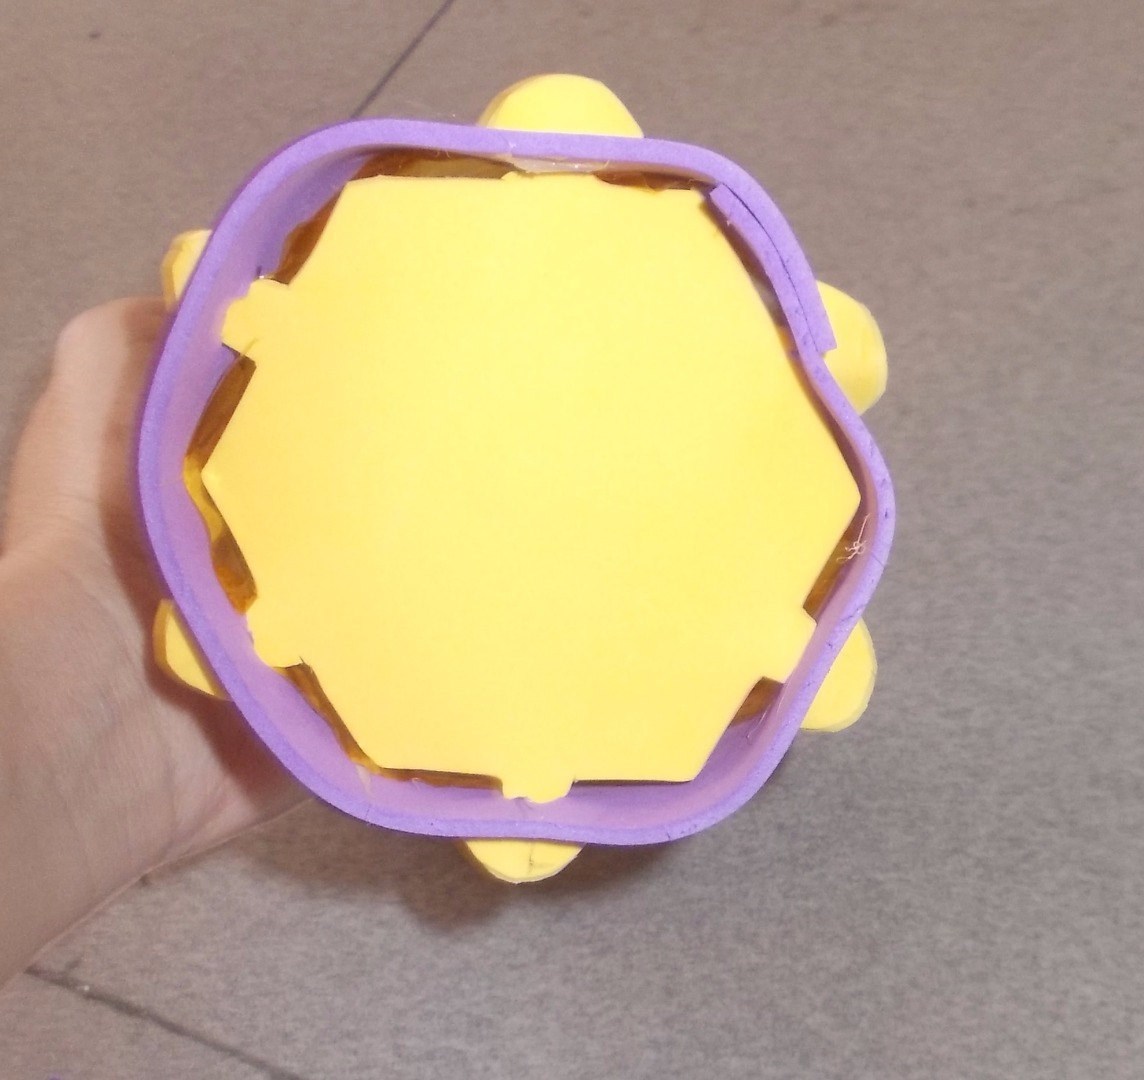 Picture of Poke the Arrow Tabs on the Foam Hexagon Onto the 6 Holes on the Bottom of the Lantern.